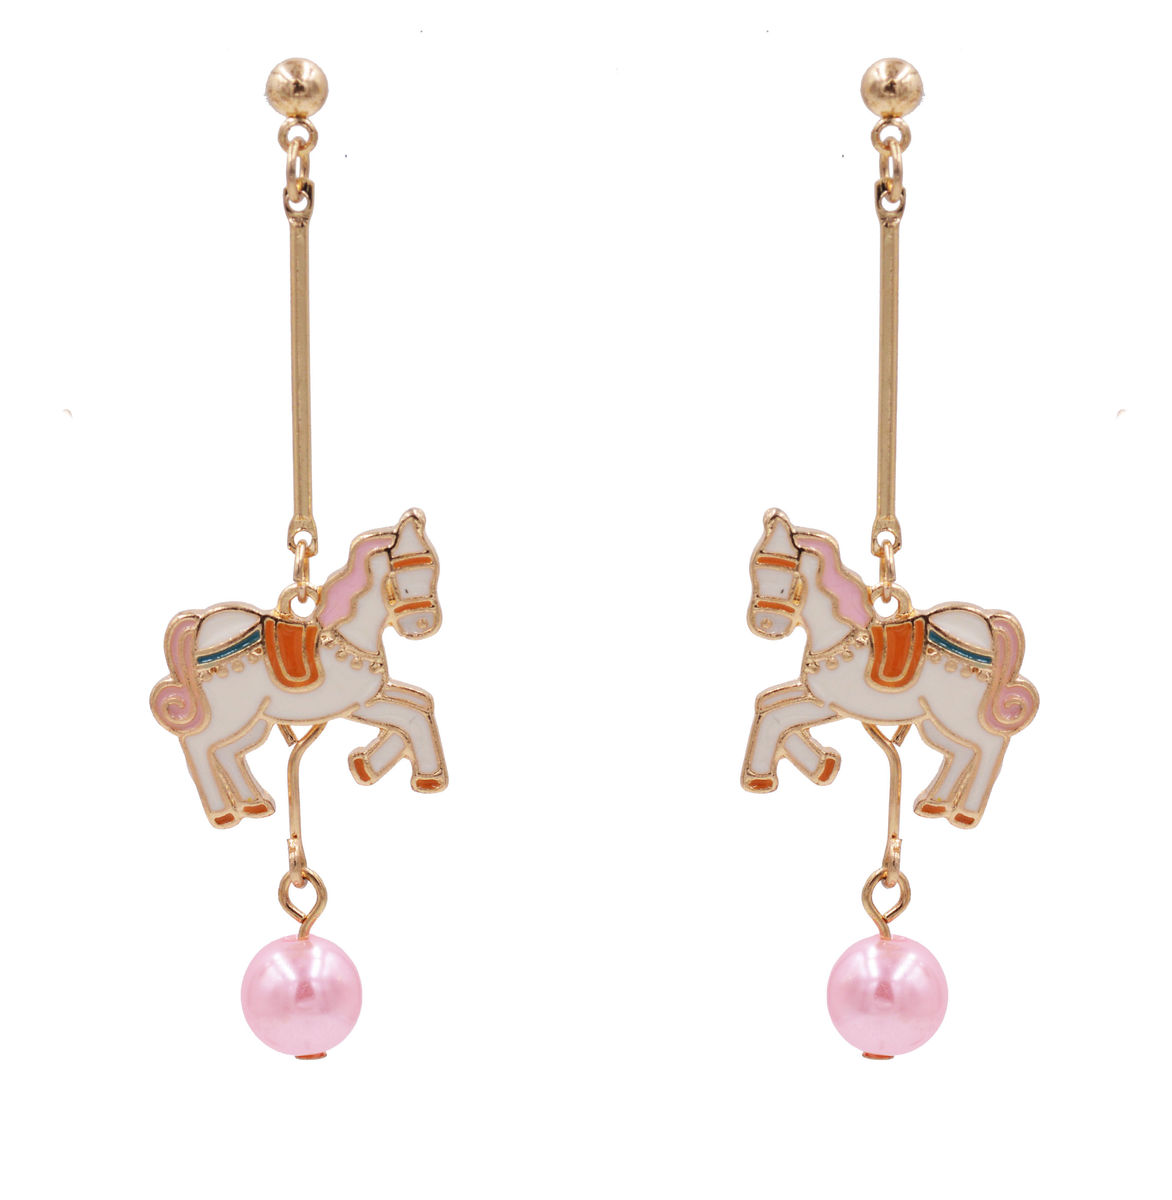 Gold Plated Carousel Horse Fairy Tale Inspired Design Drop Stud Dangling Earrings with Enamel Plating - Cute, Fun and Quirky Jewellery - product images  of